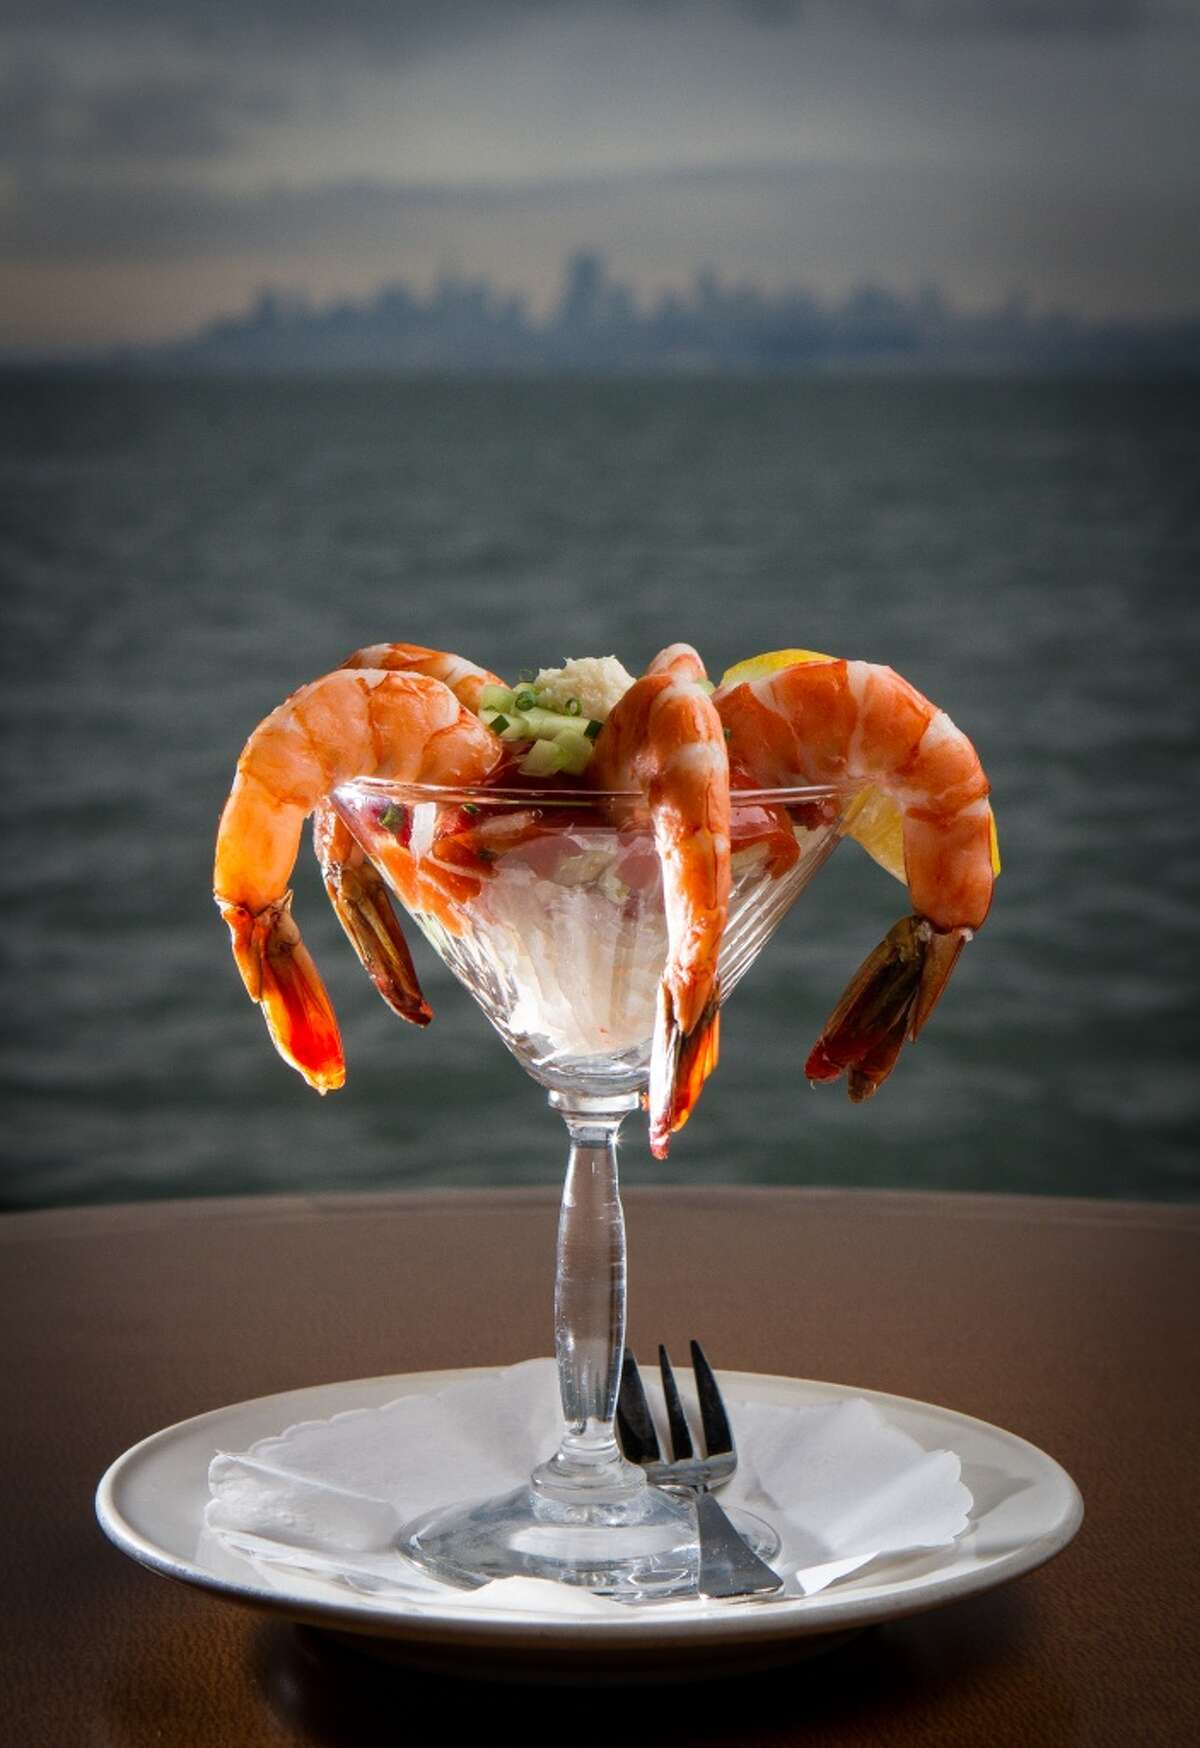 The Prawn cocktail at the Trident restaurant in Sausalito, Calif. is seen on Saturday, December 15th, 2012.